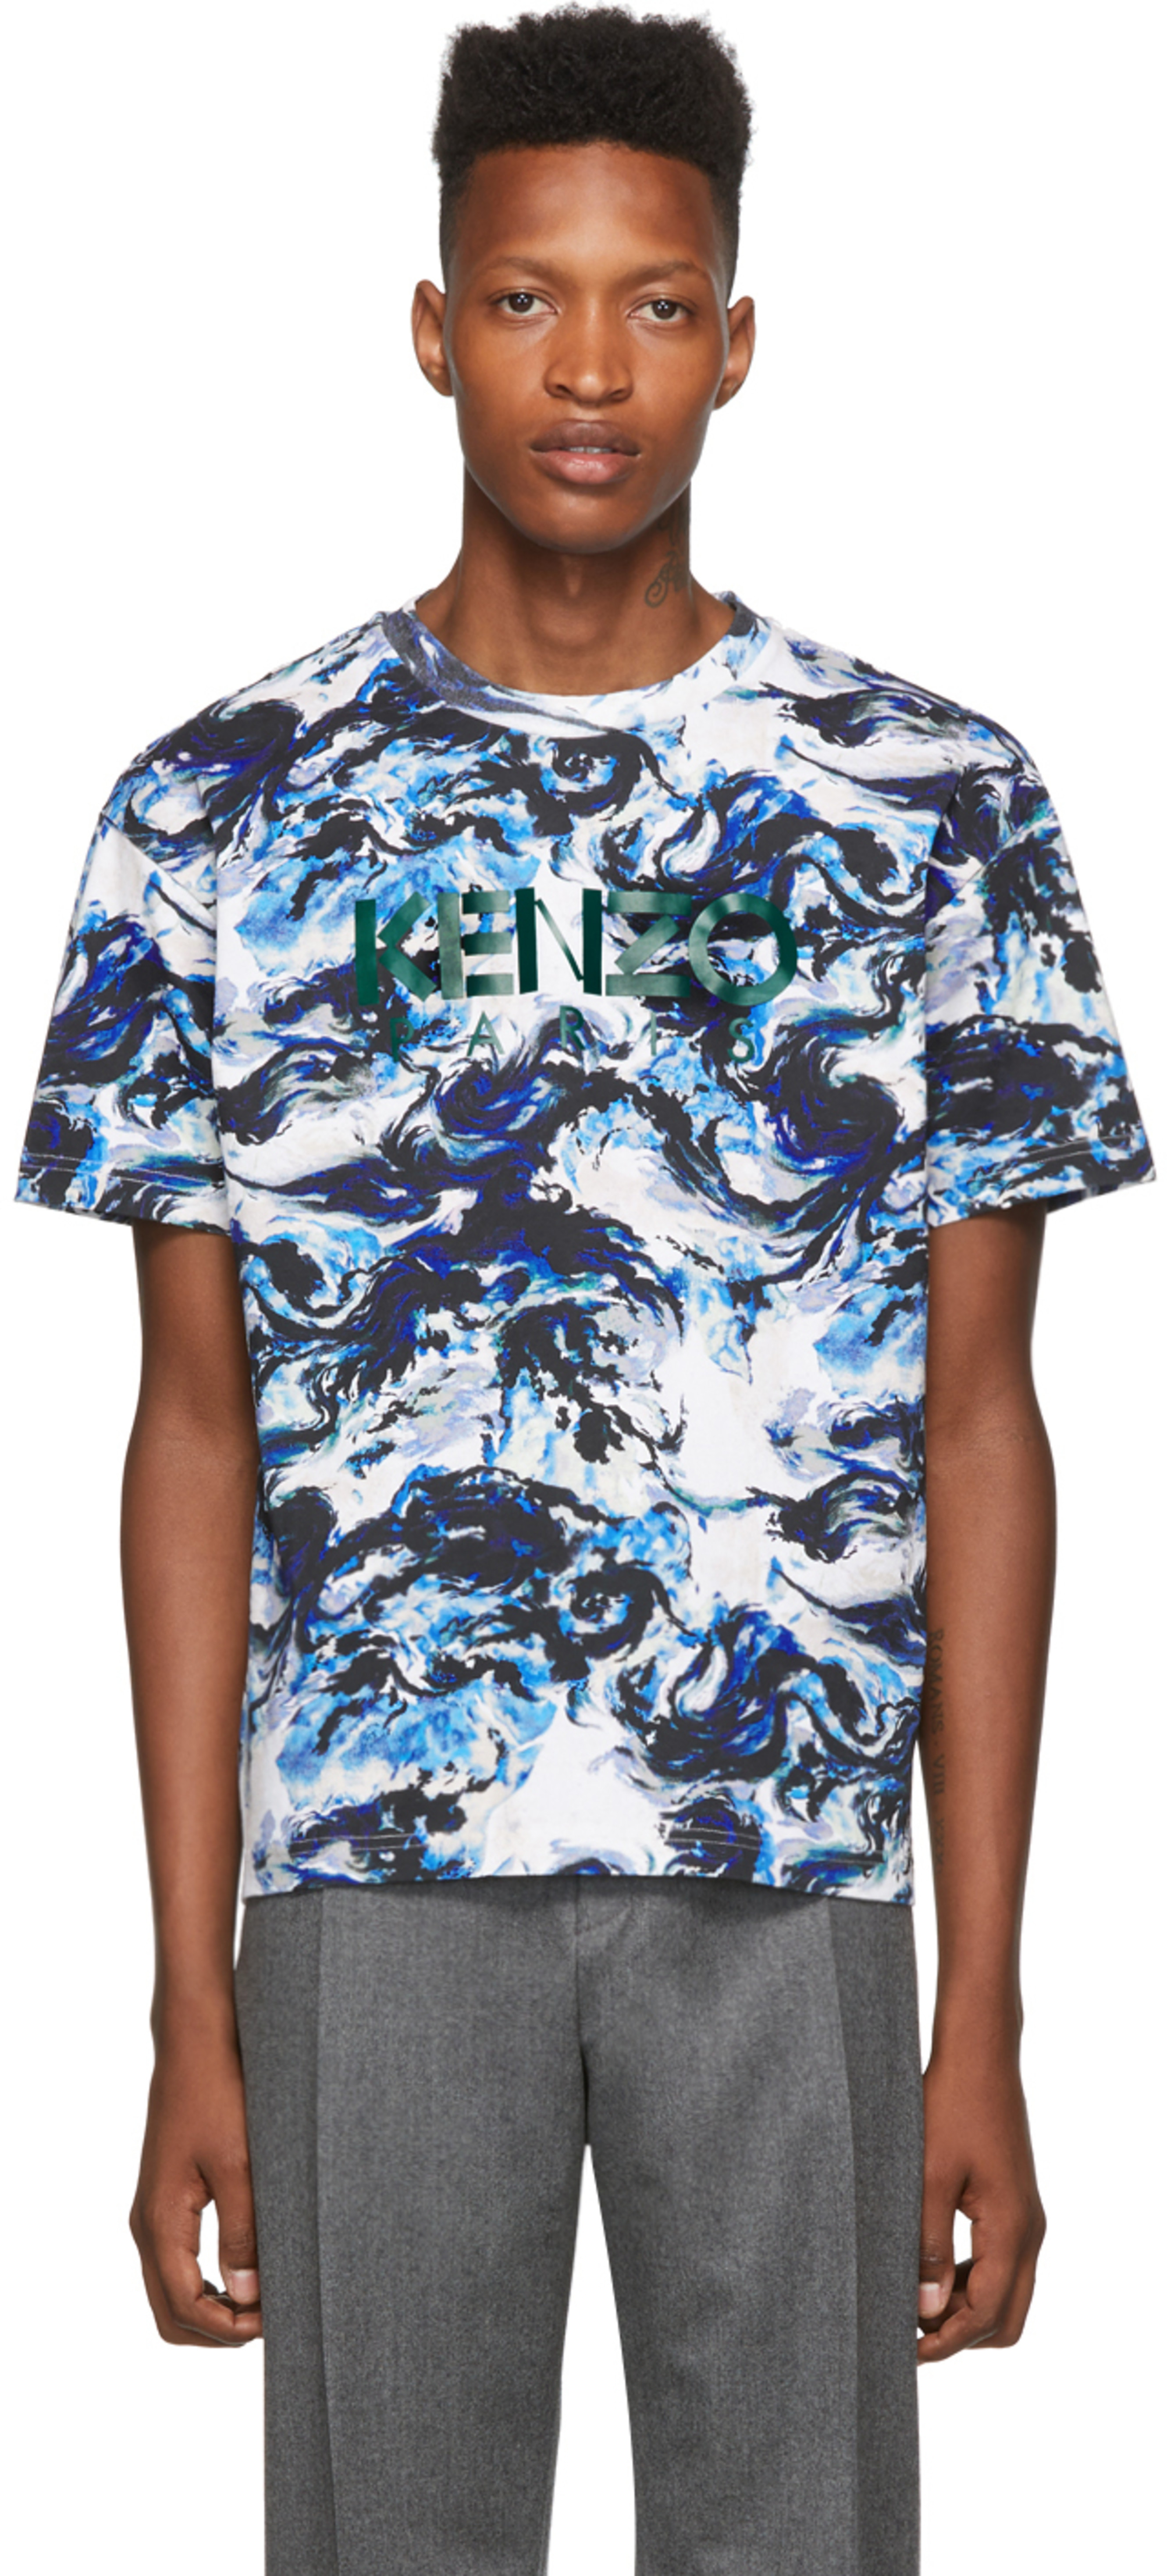 Collection Collection France Kenzo HommesSsense Kenzo Kenzo Collection France HommesSsense Pour Pour dxWeroBQC